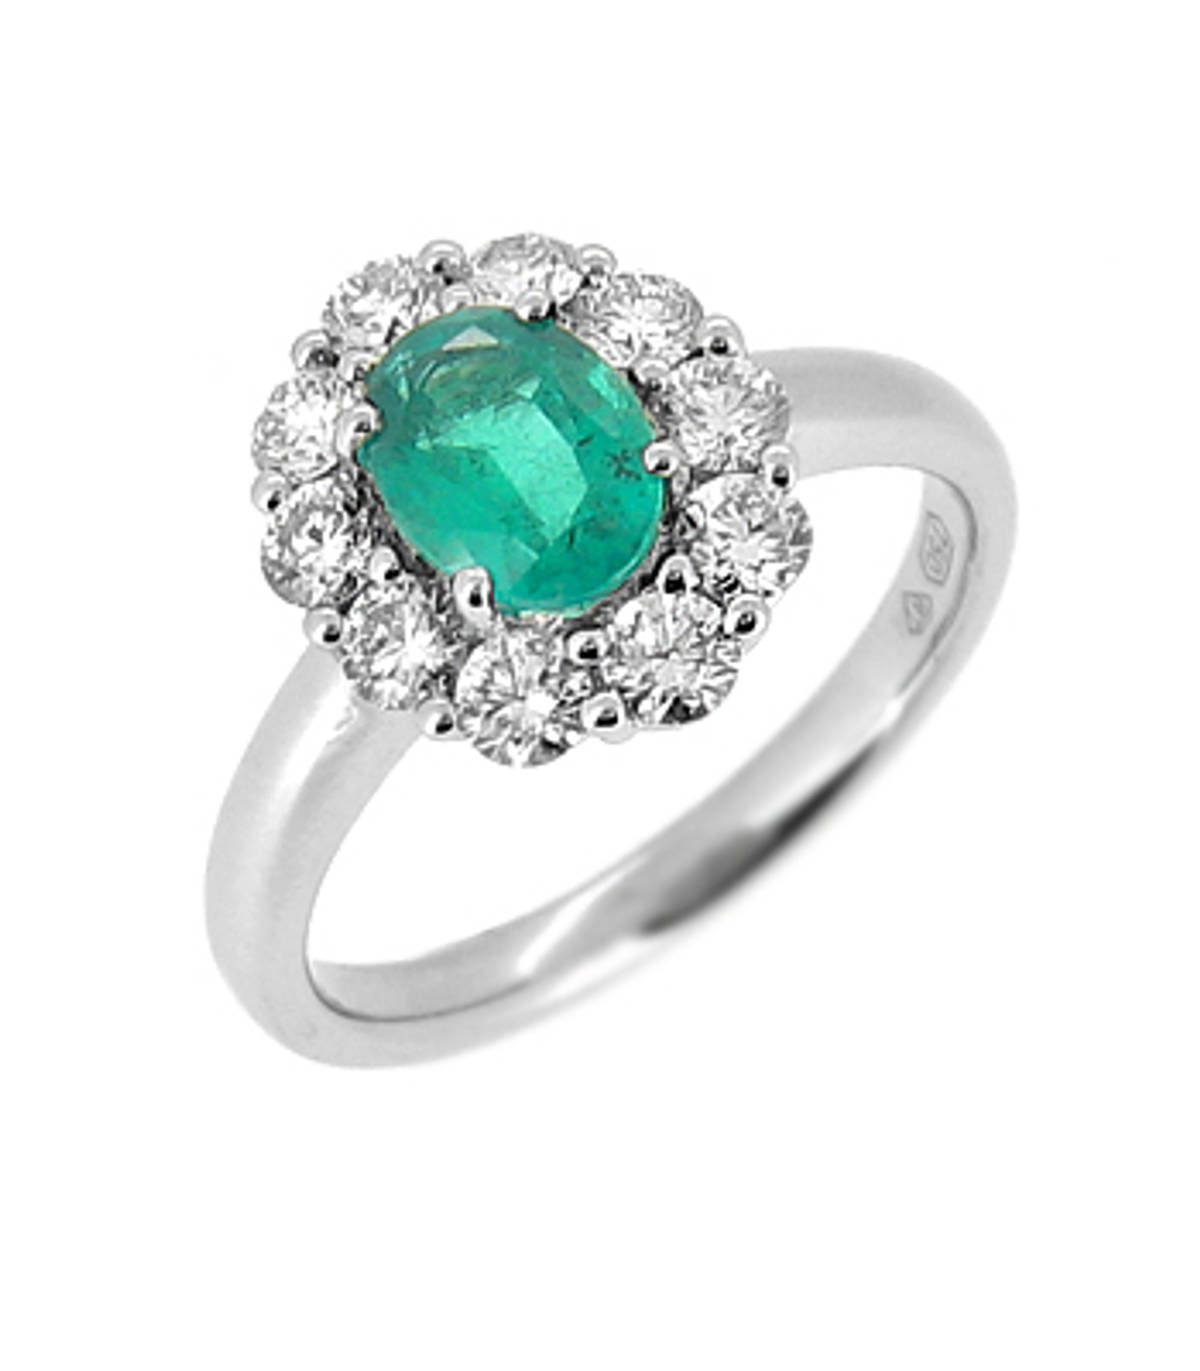 Oval emerald and round diamond cluster ringPictured item: emerald 0.81ct/diamonds 0.72ct set in 18k white gold